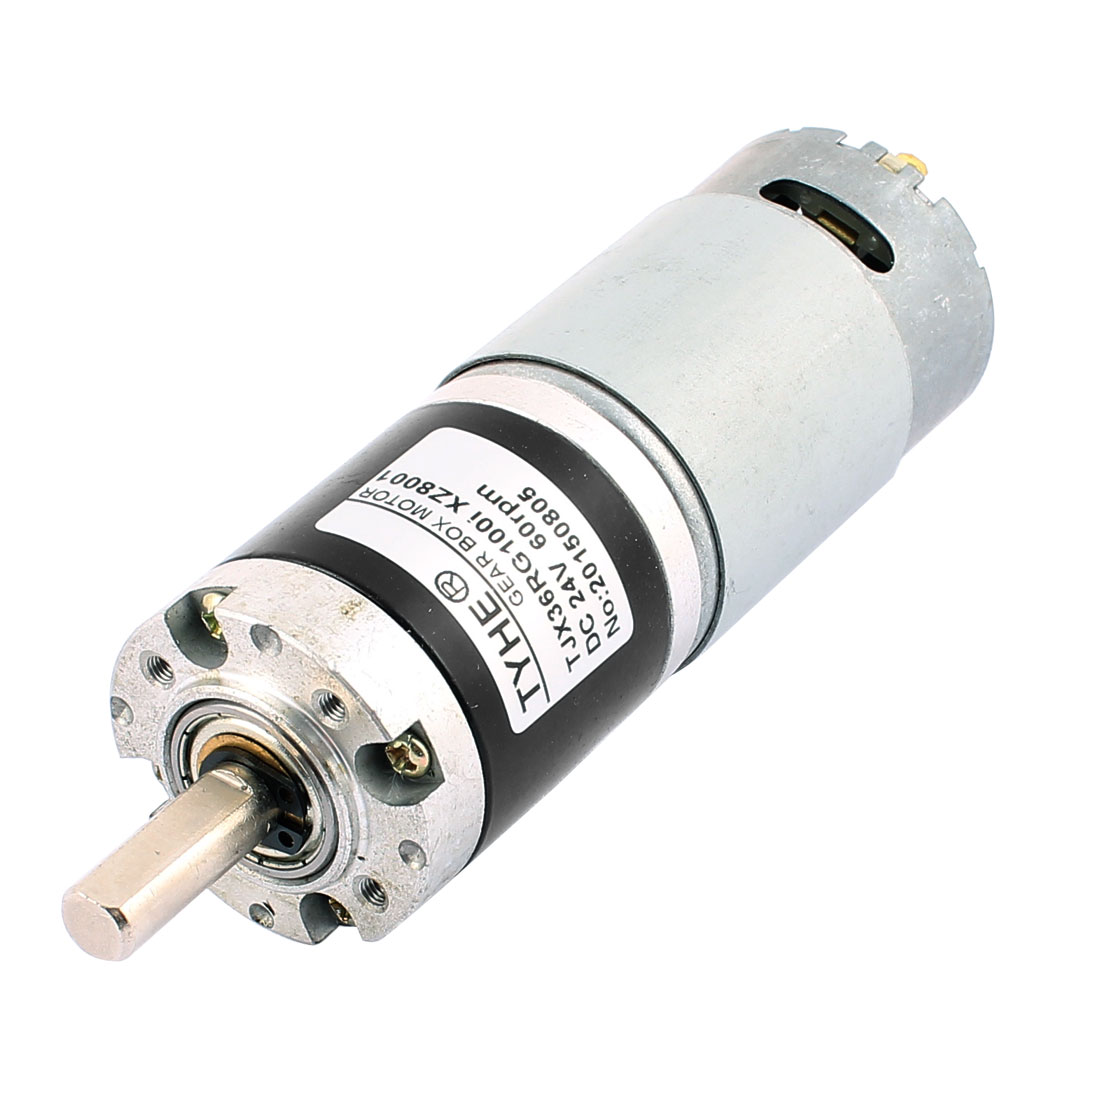 DC 24V 60RPM High Torque 8mm Shaft Dia Cylindrical DC Geared Motor TJX36RG100i-ZX8001